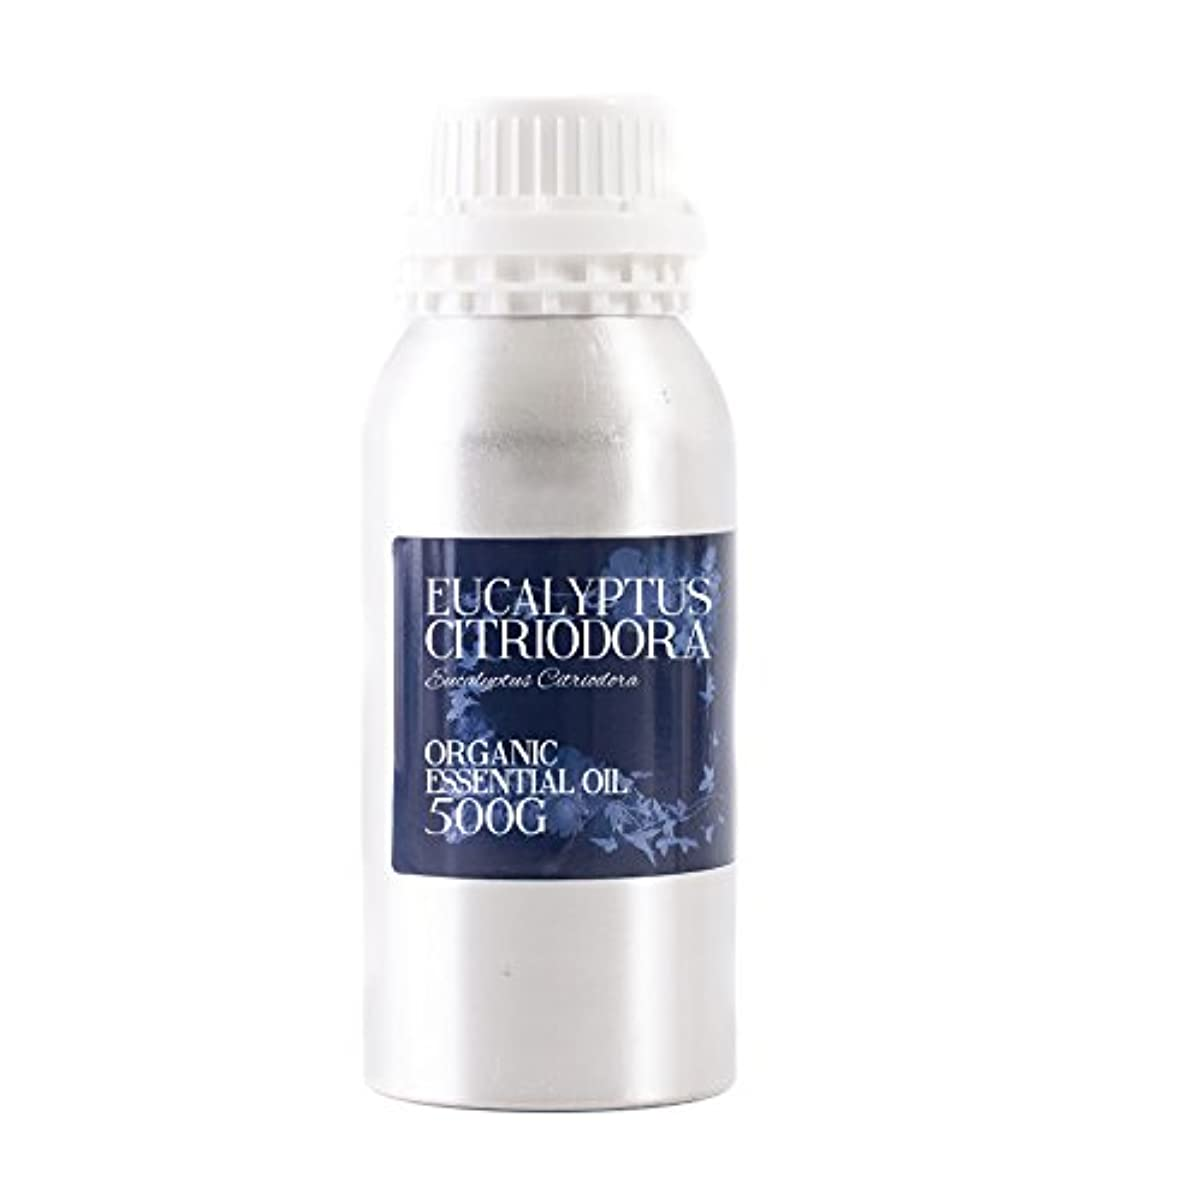 旋律的アンソロジー再生可能Eucalyptus Citriodora Organic Essential Oil - 500g - 100% Pure